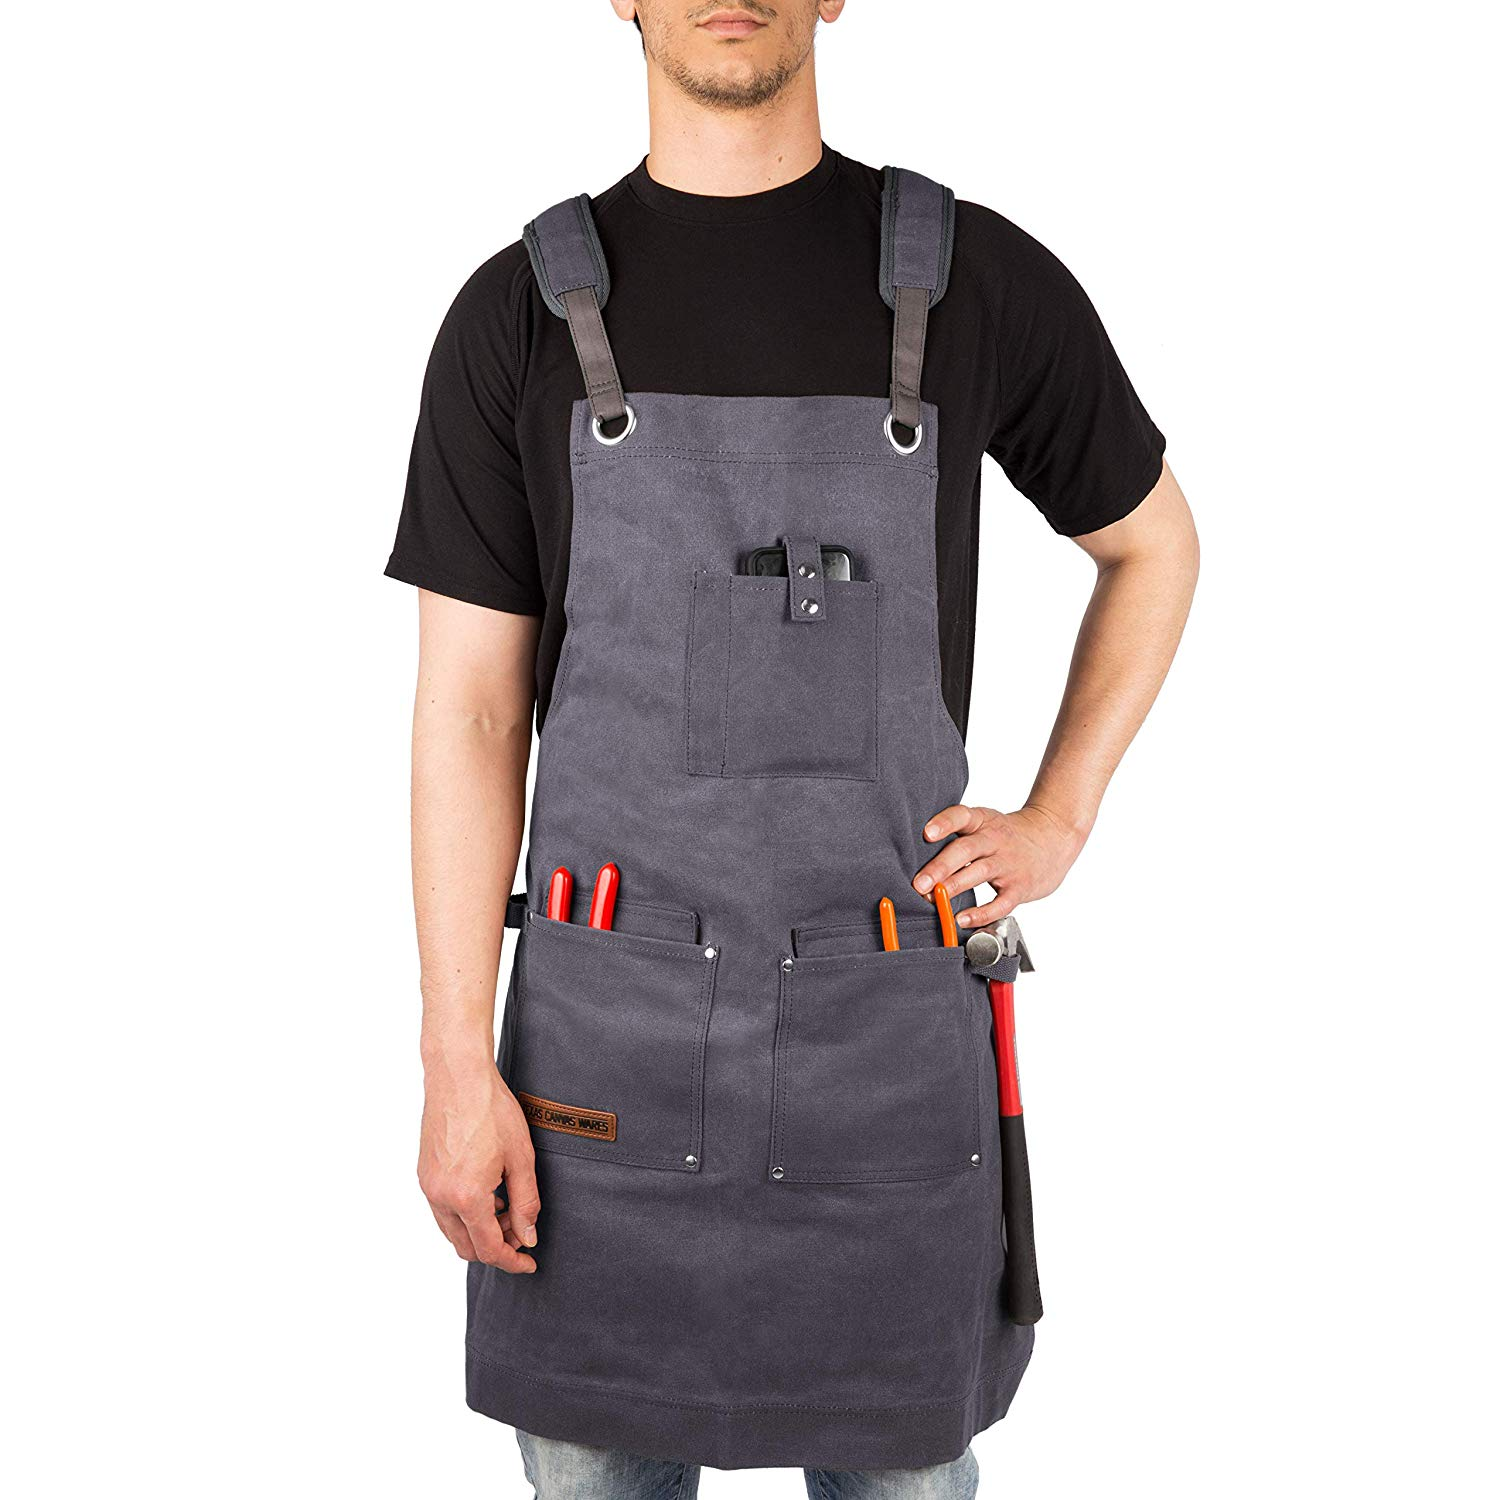 Heavy Duty Work Apron With Pockets